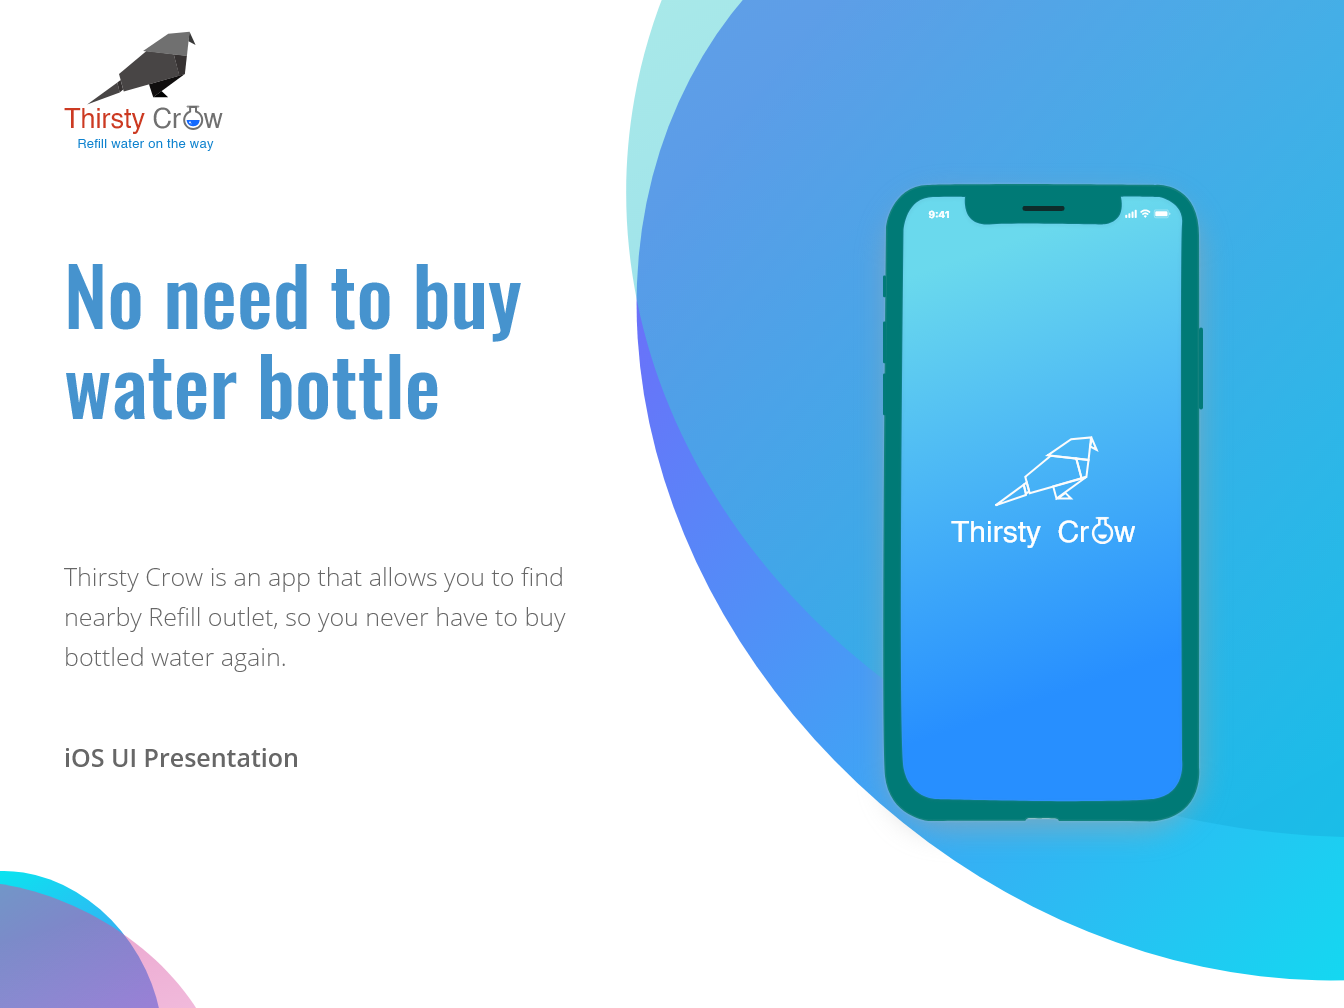 Thirsty Crow water bottle water mobile app ios 10